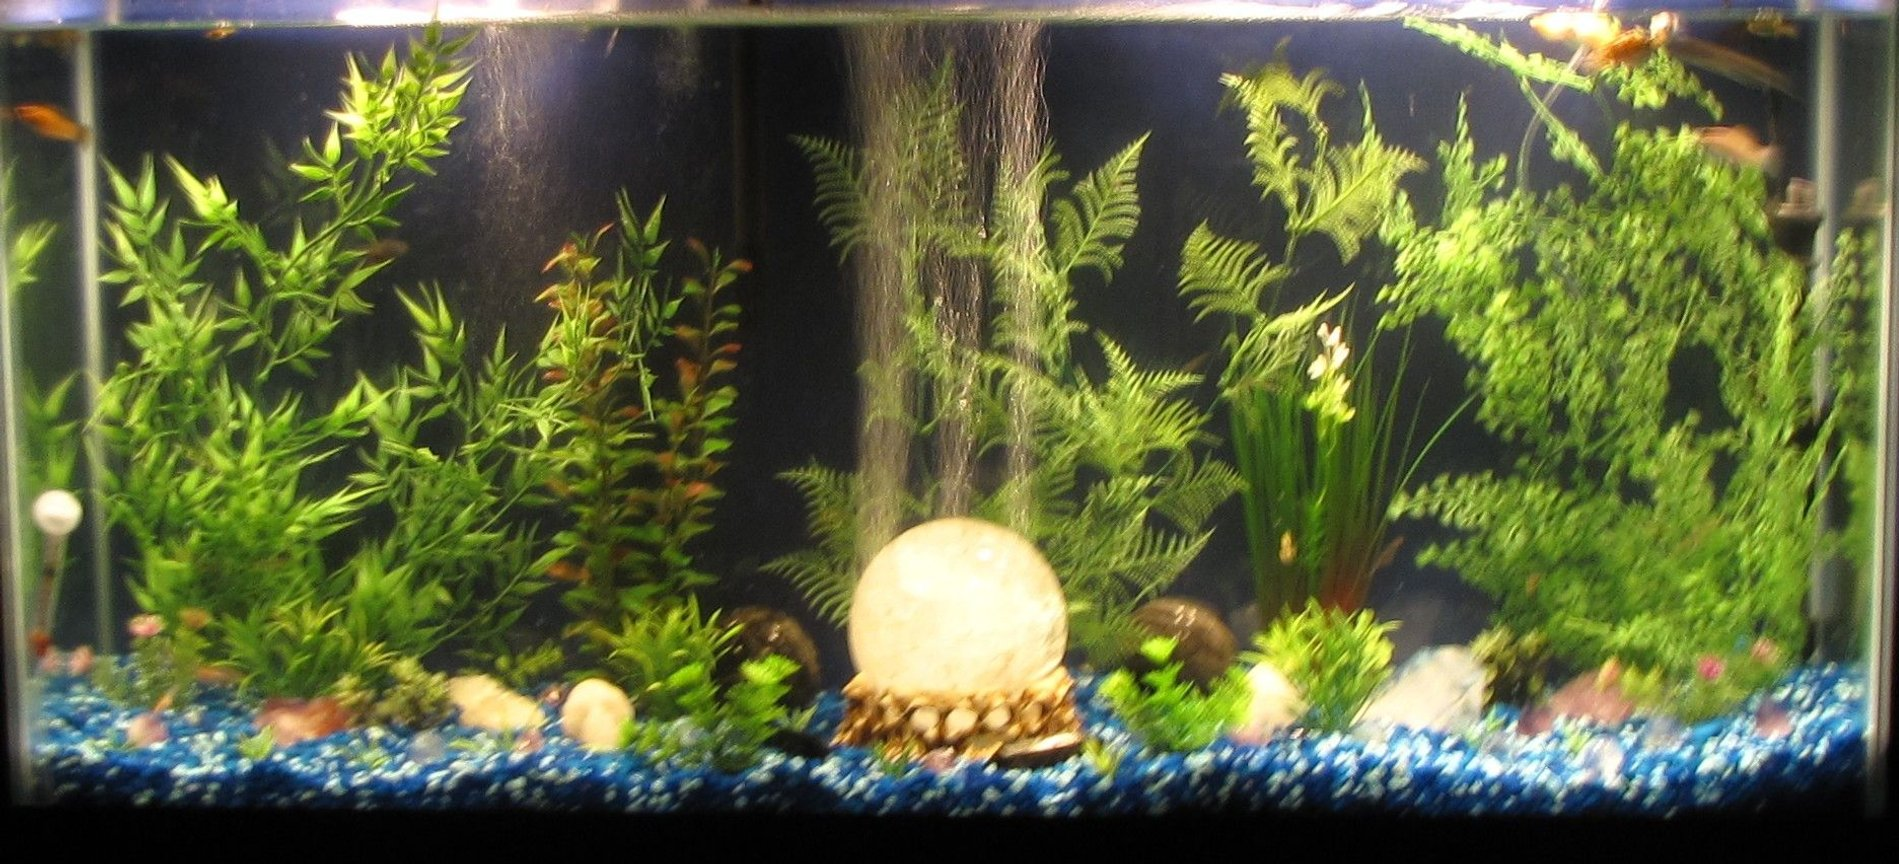 48 gallons freshwater fish tank (mostly fish and non-living decorations) - 48 gal Freshwater Aquarium